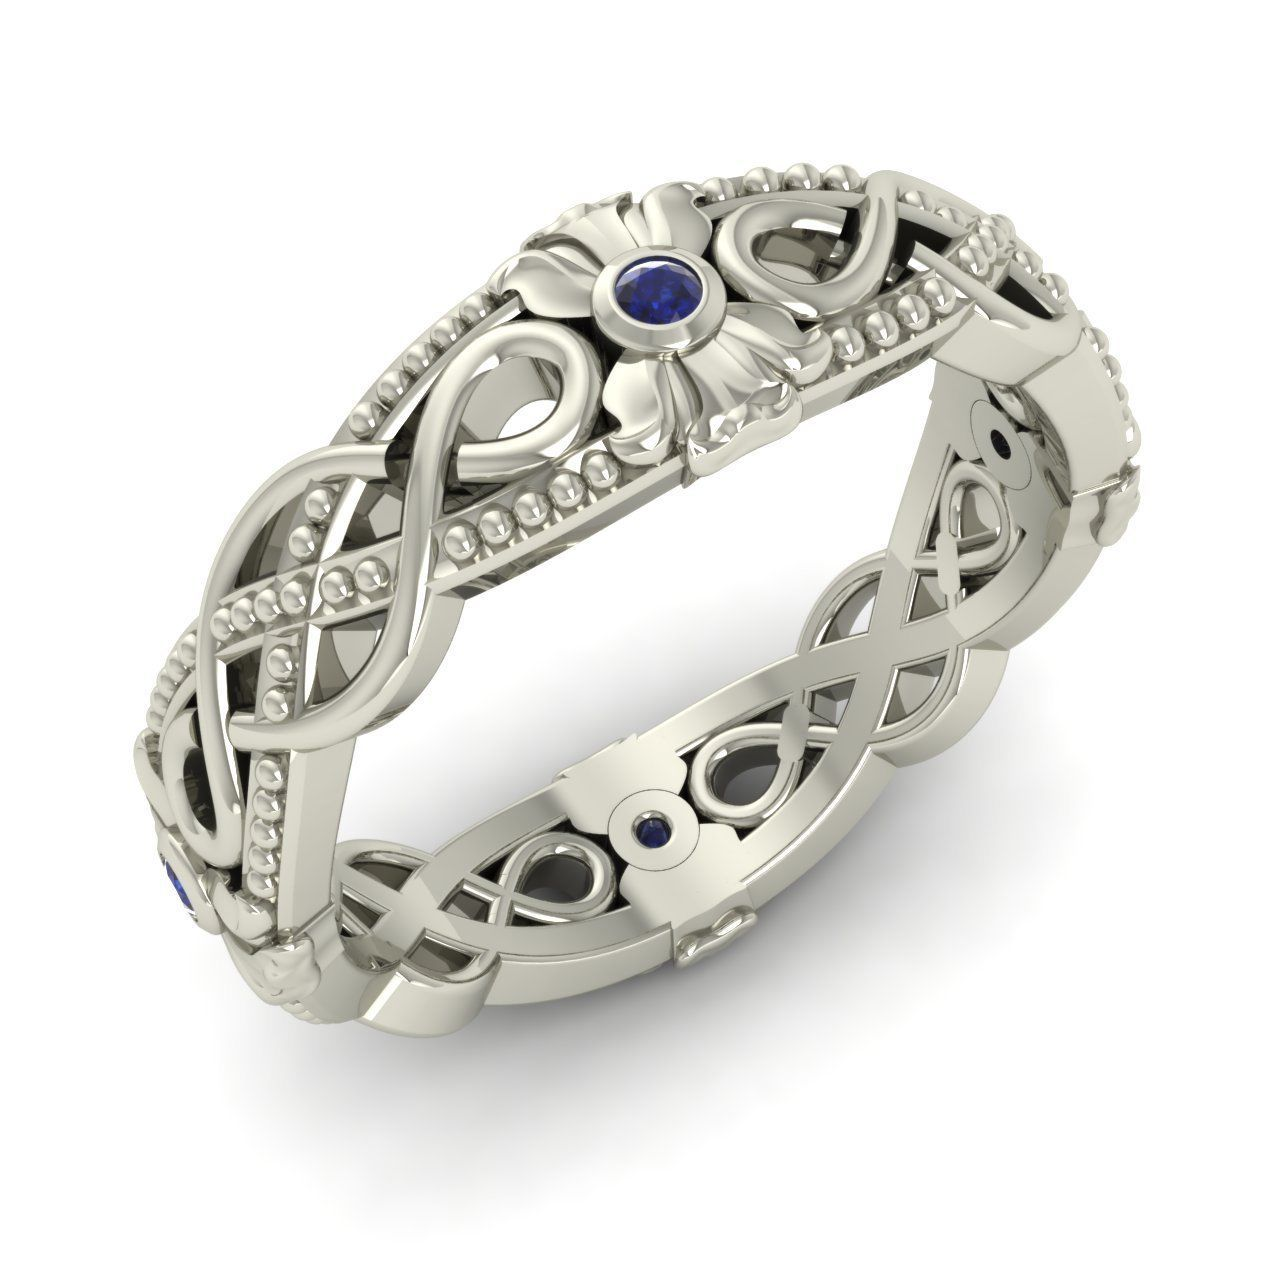 Certified Blue Shire Art Deco Look Filigree Wedding Band Ring 14k White Gold